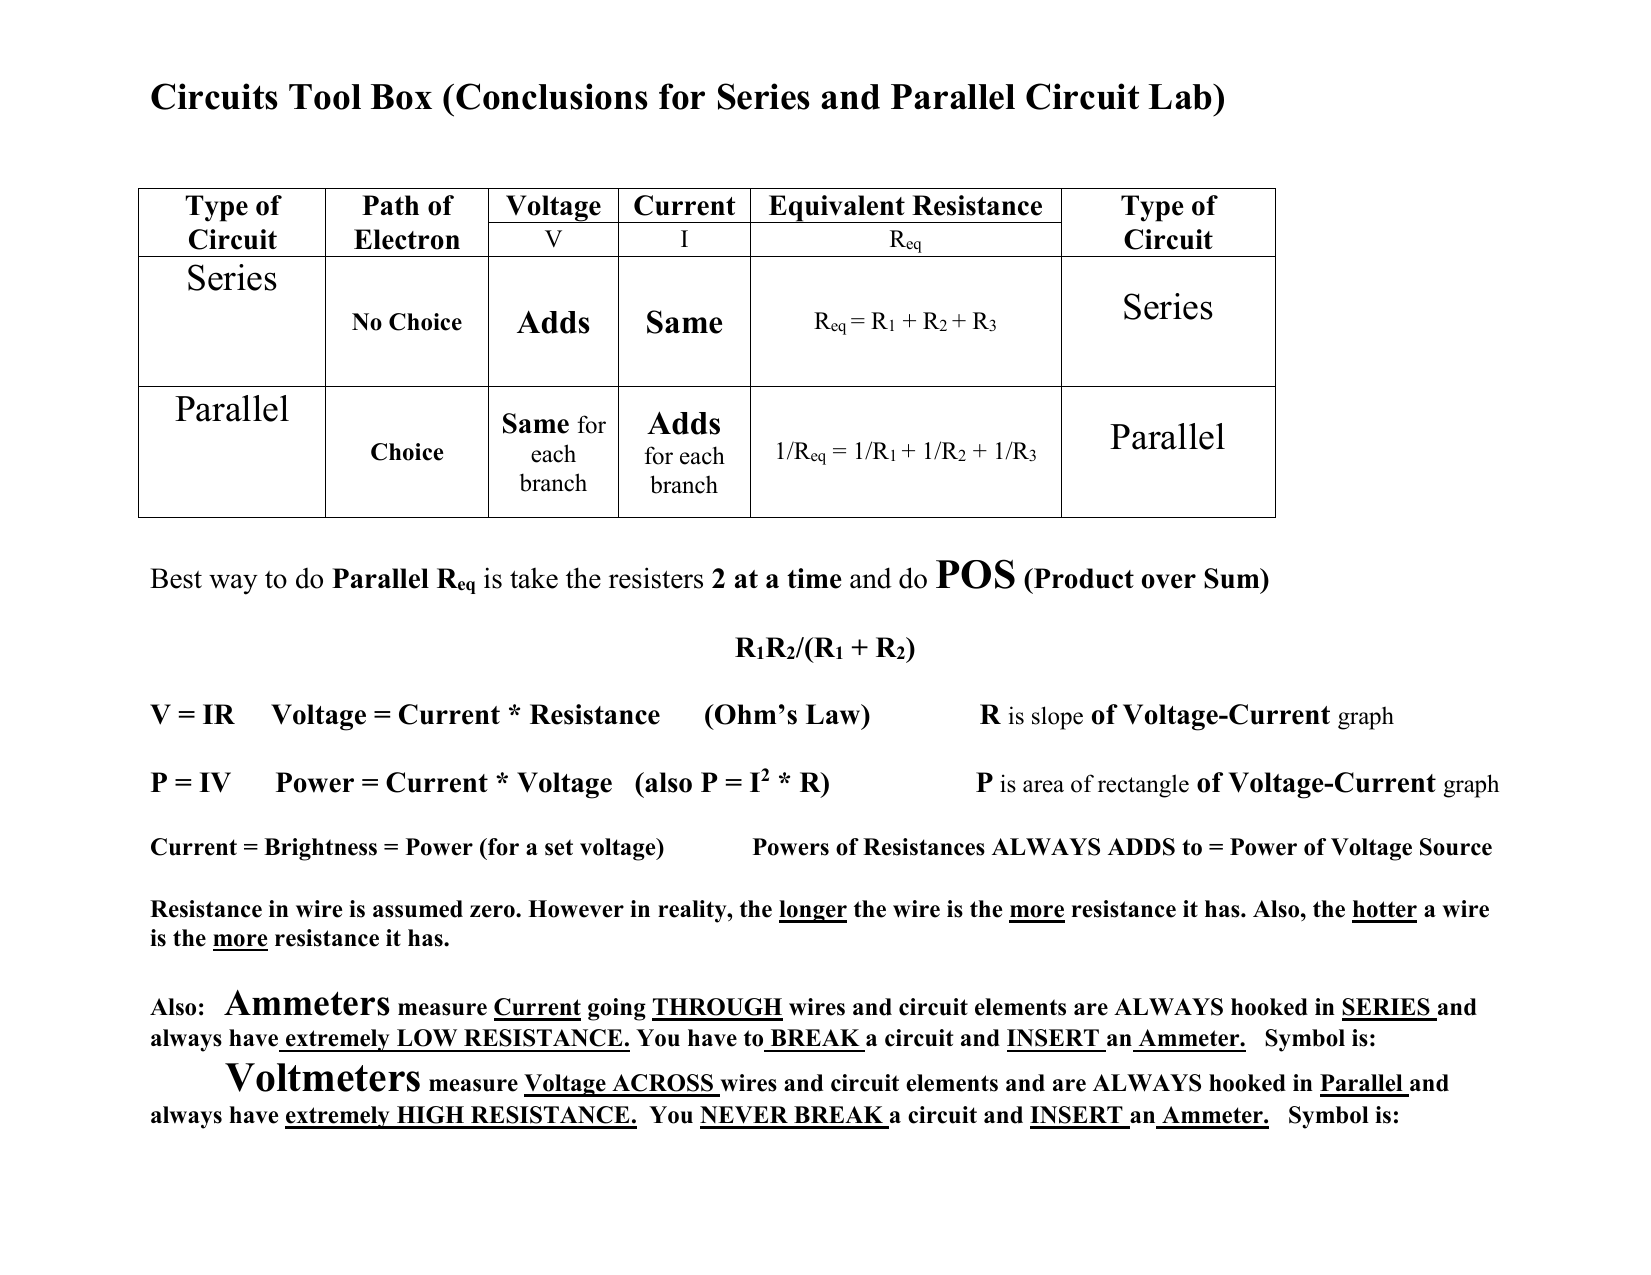 Pos Circuits Tool Box Conclusions For Series And Parallel Circuit Resistance In A Lab